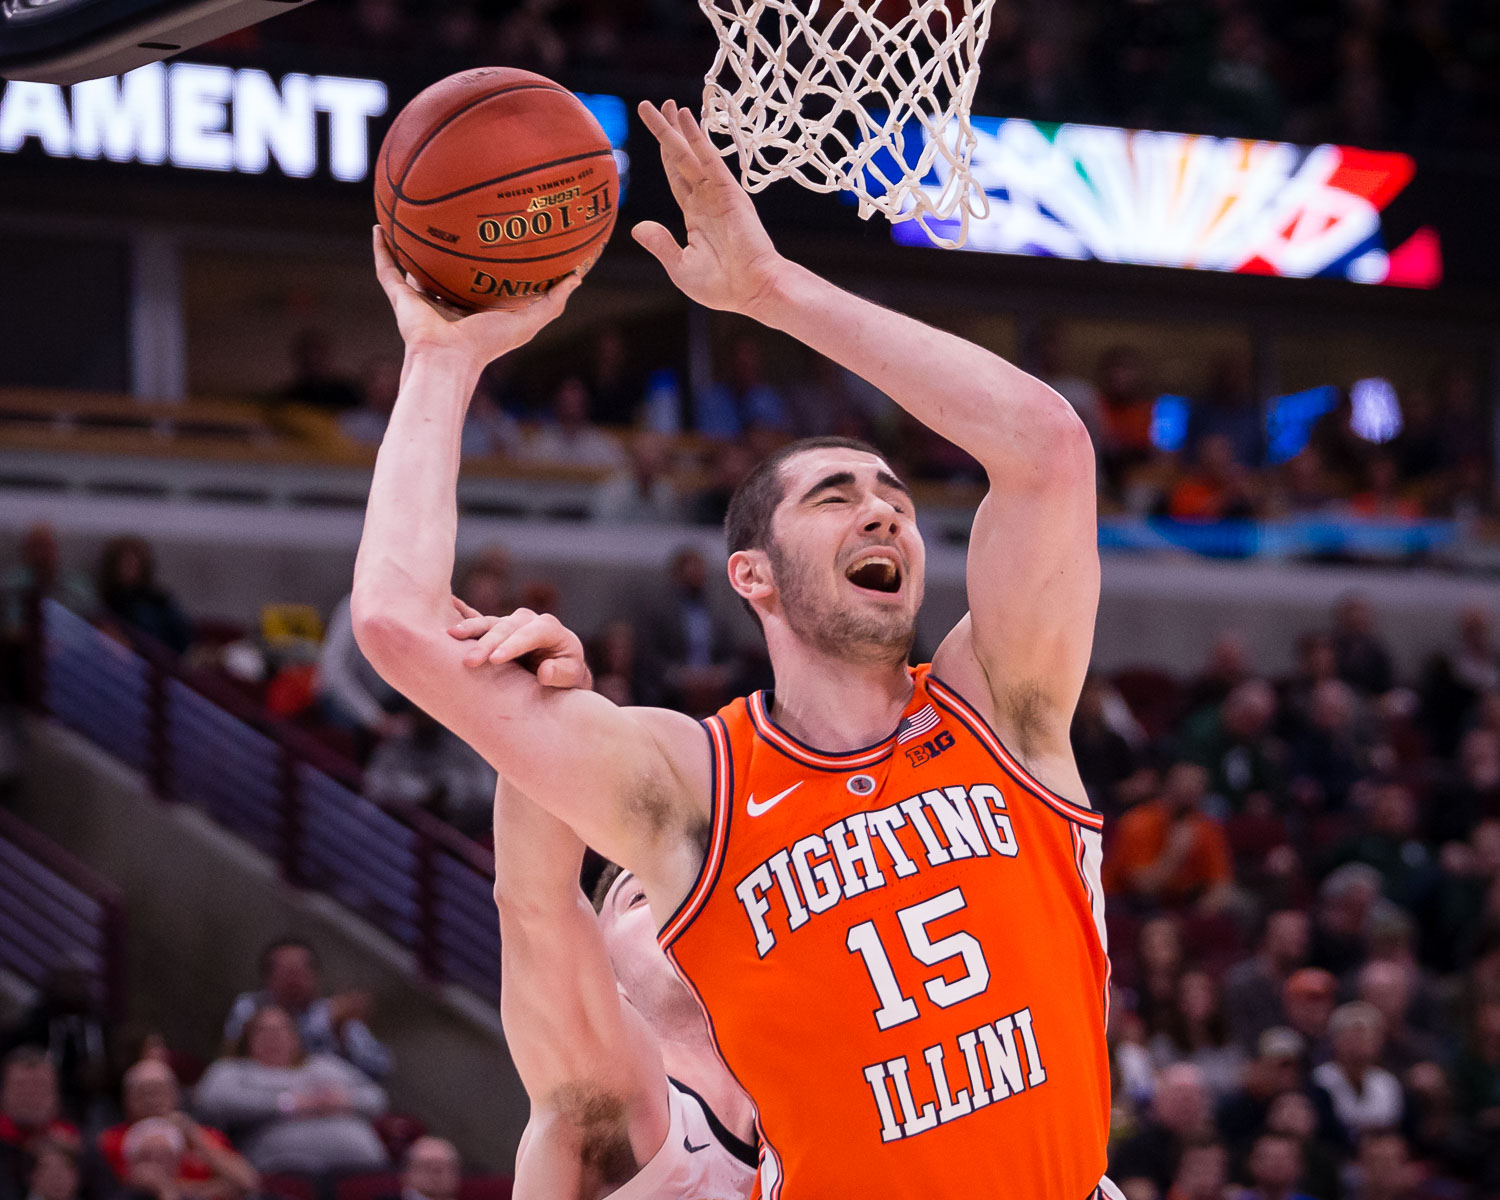 Illinois+forward+Giorgi+Bezhanishvili+%2815%29+gets+fouled+on+a+layup+during+the+game+against+Iowa+in+the+second+round+of+the+Big+Ten+Tournament+at+the+United+Center+on+Thursday%2C+March+14.+The+Illini+lost+83-62.